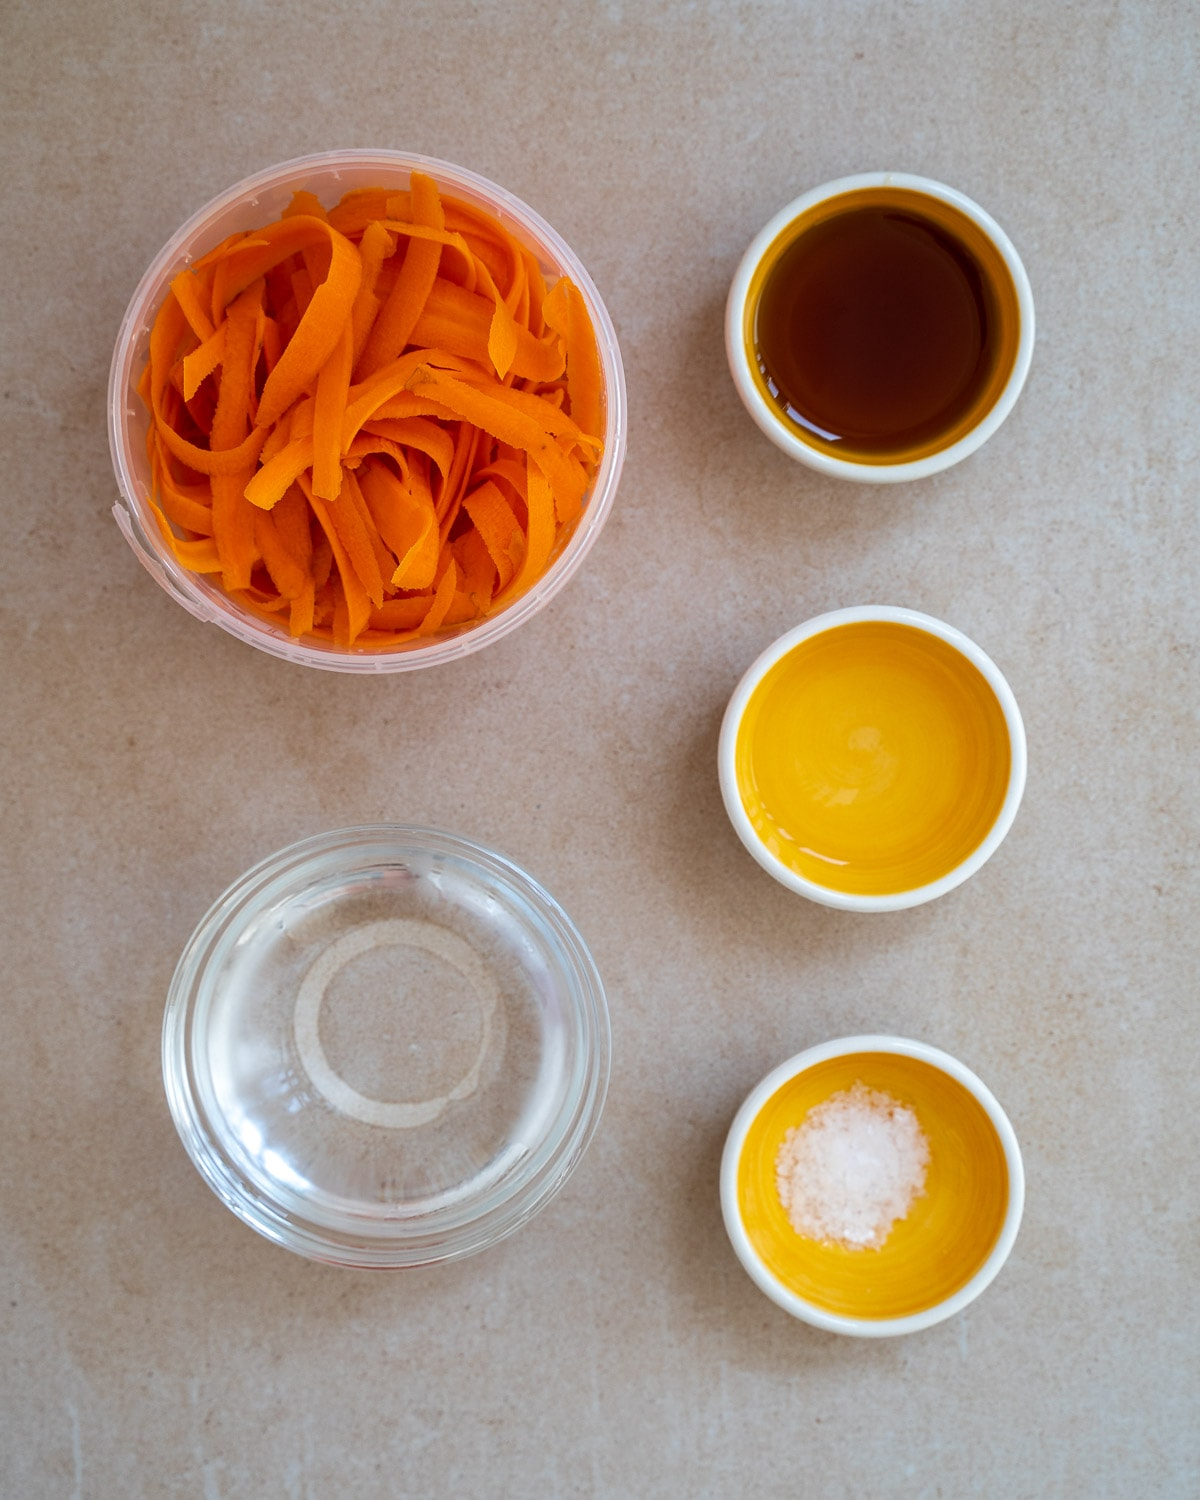 Pickled carrots ingredients